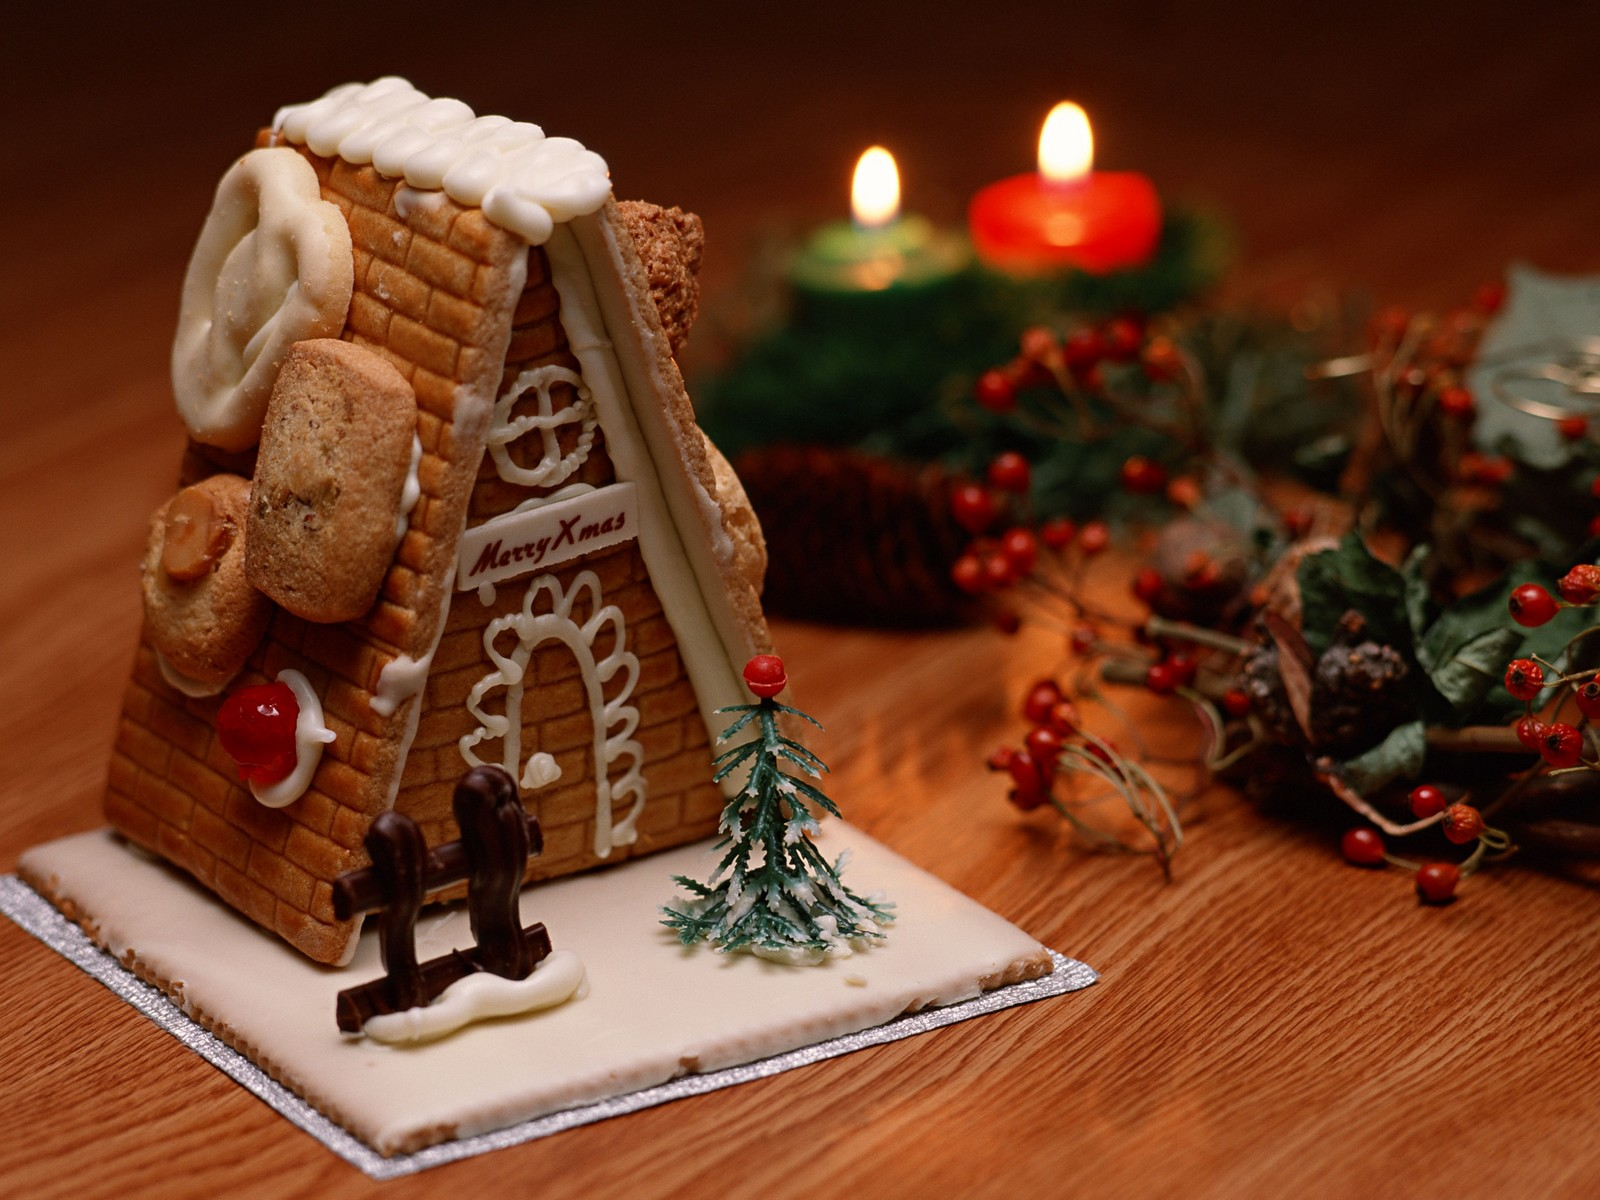 Free Download Christmas Cake Images : Free greeting cards, Download cards for festival ...